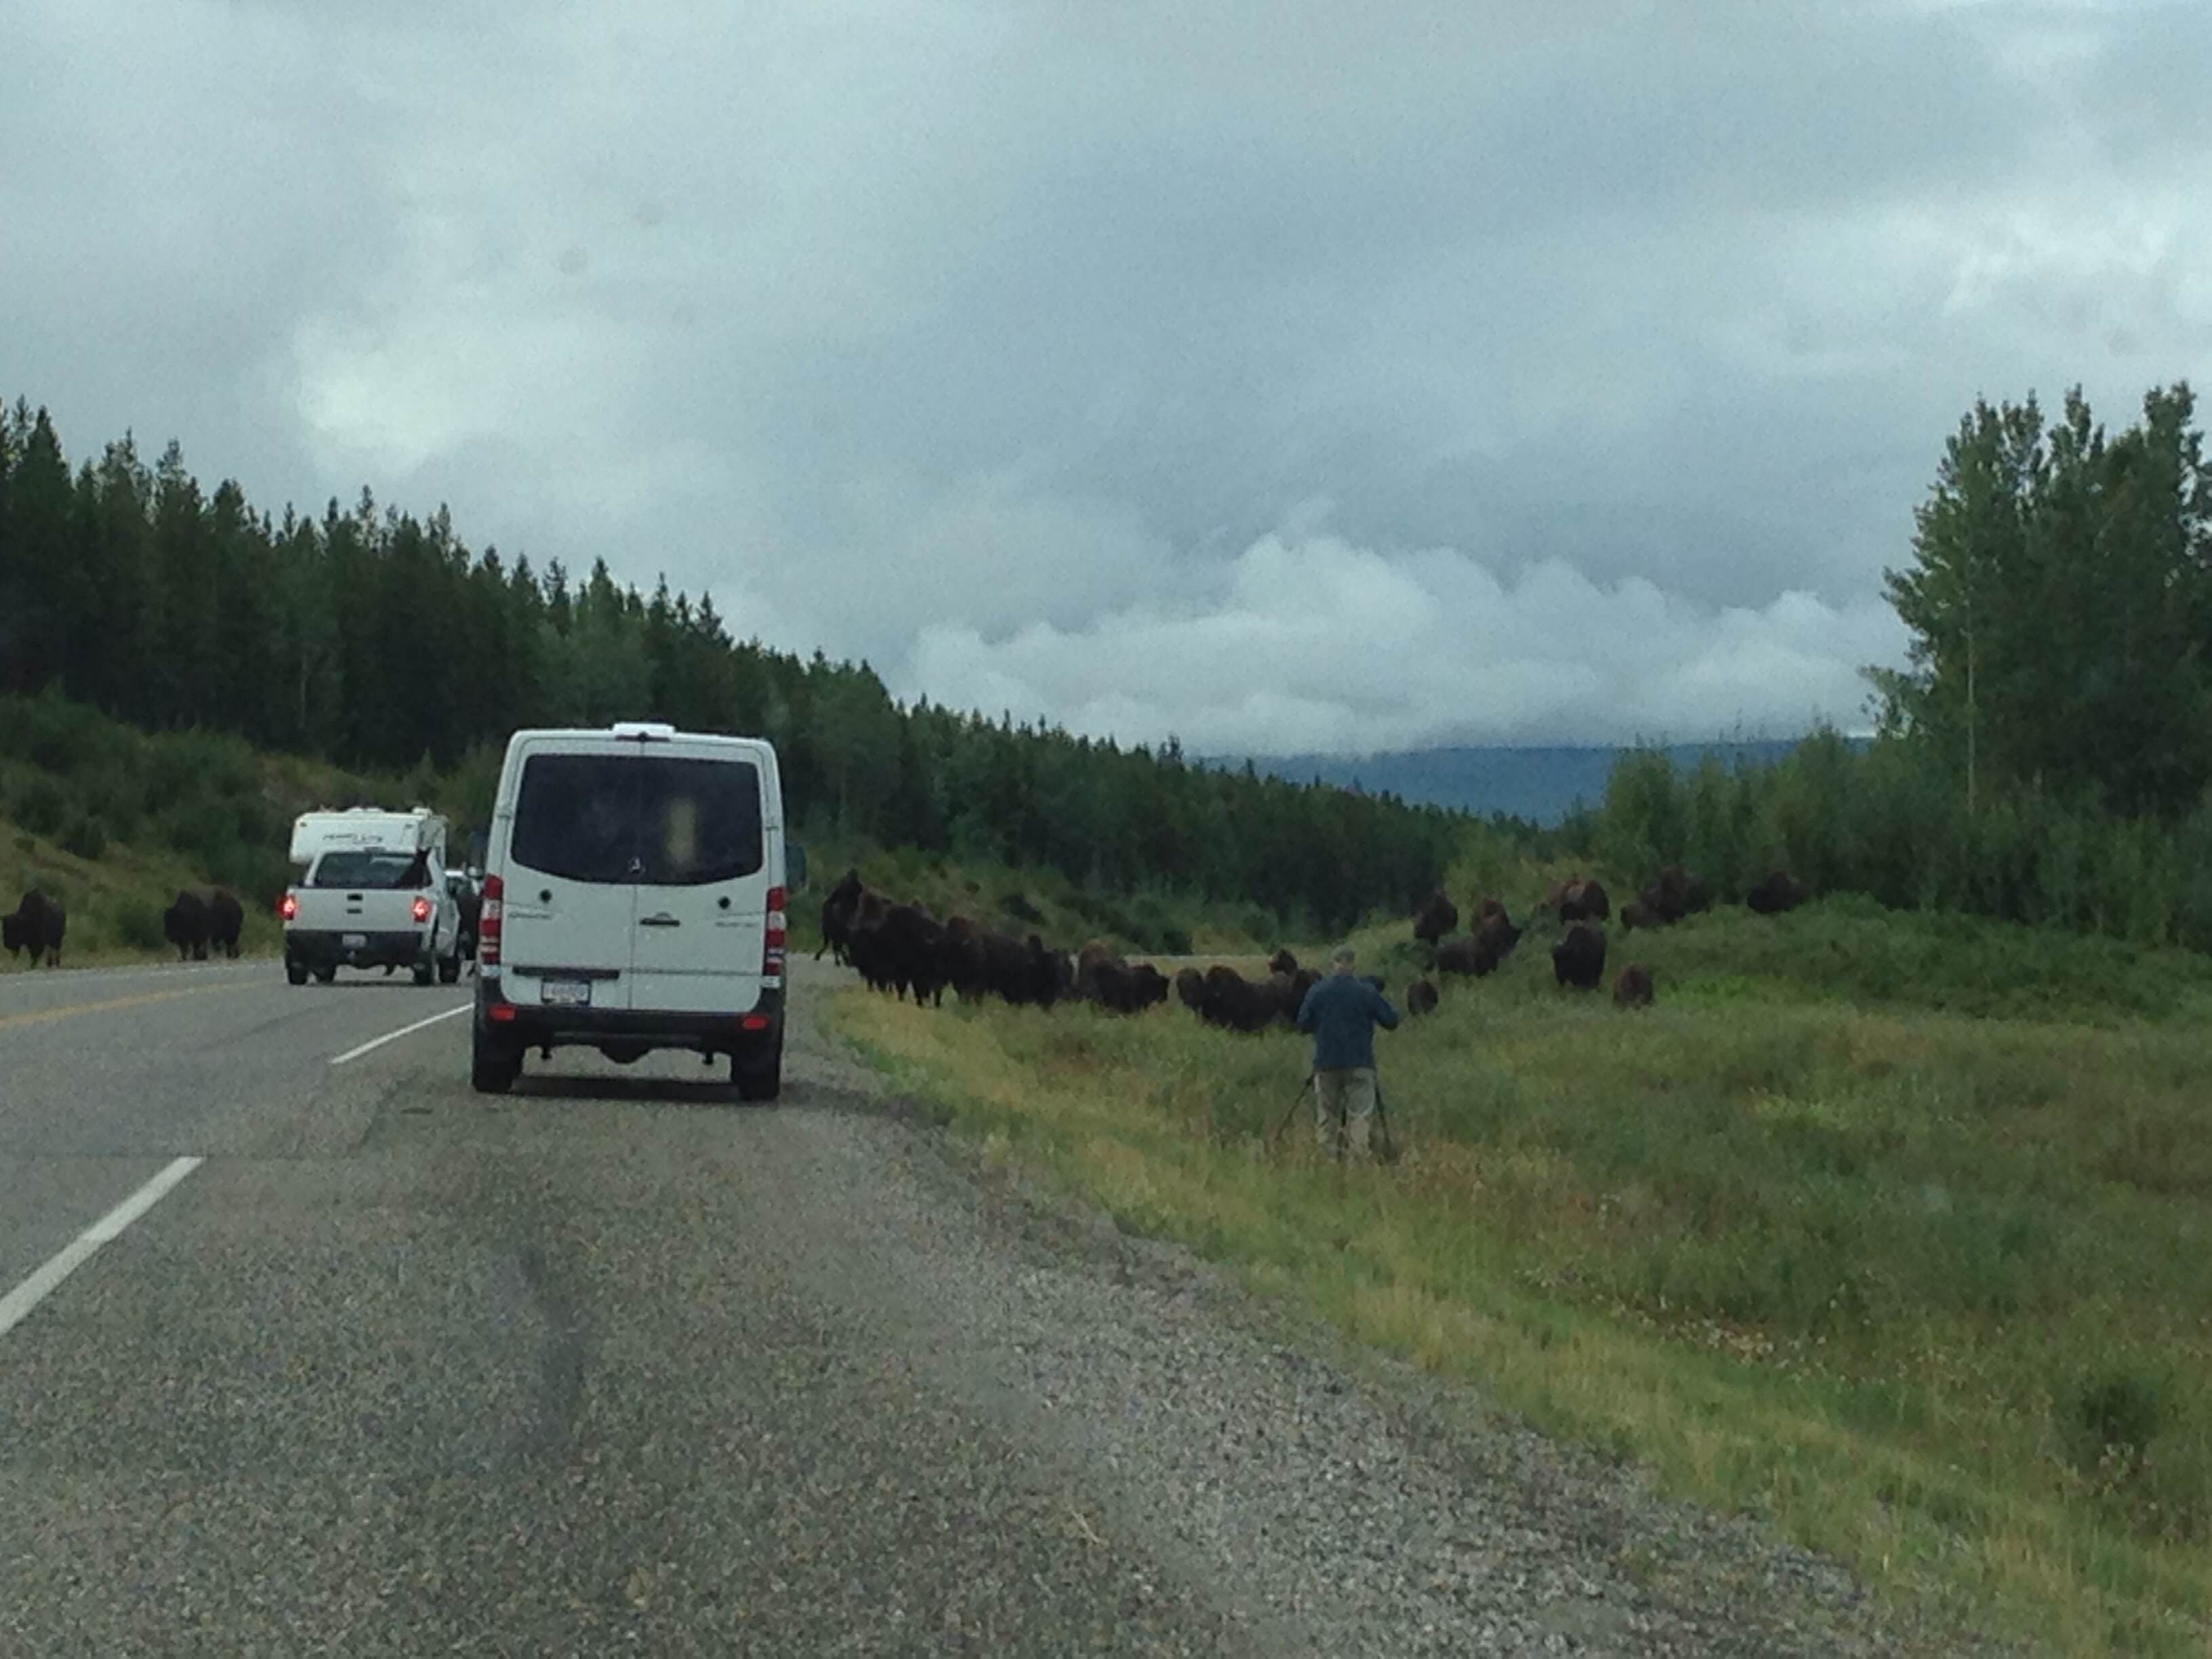 Dumb guy who hopefully was not gored by bison